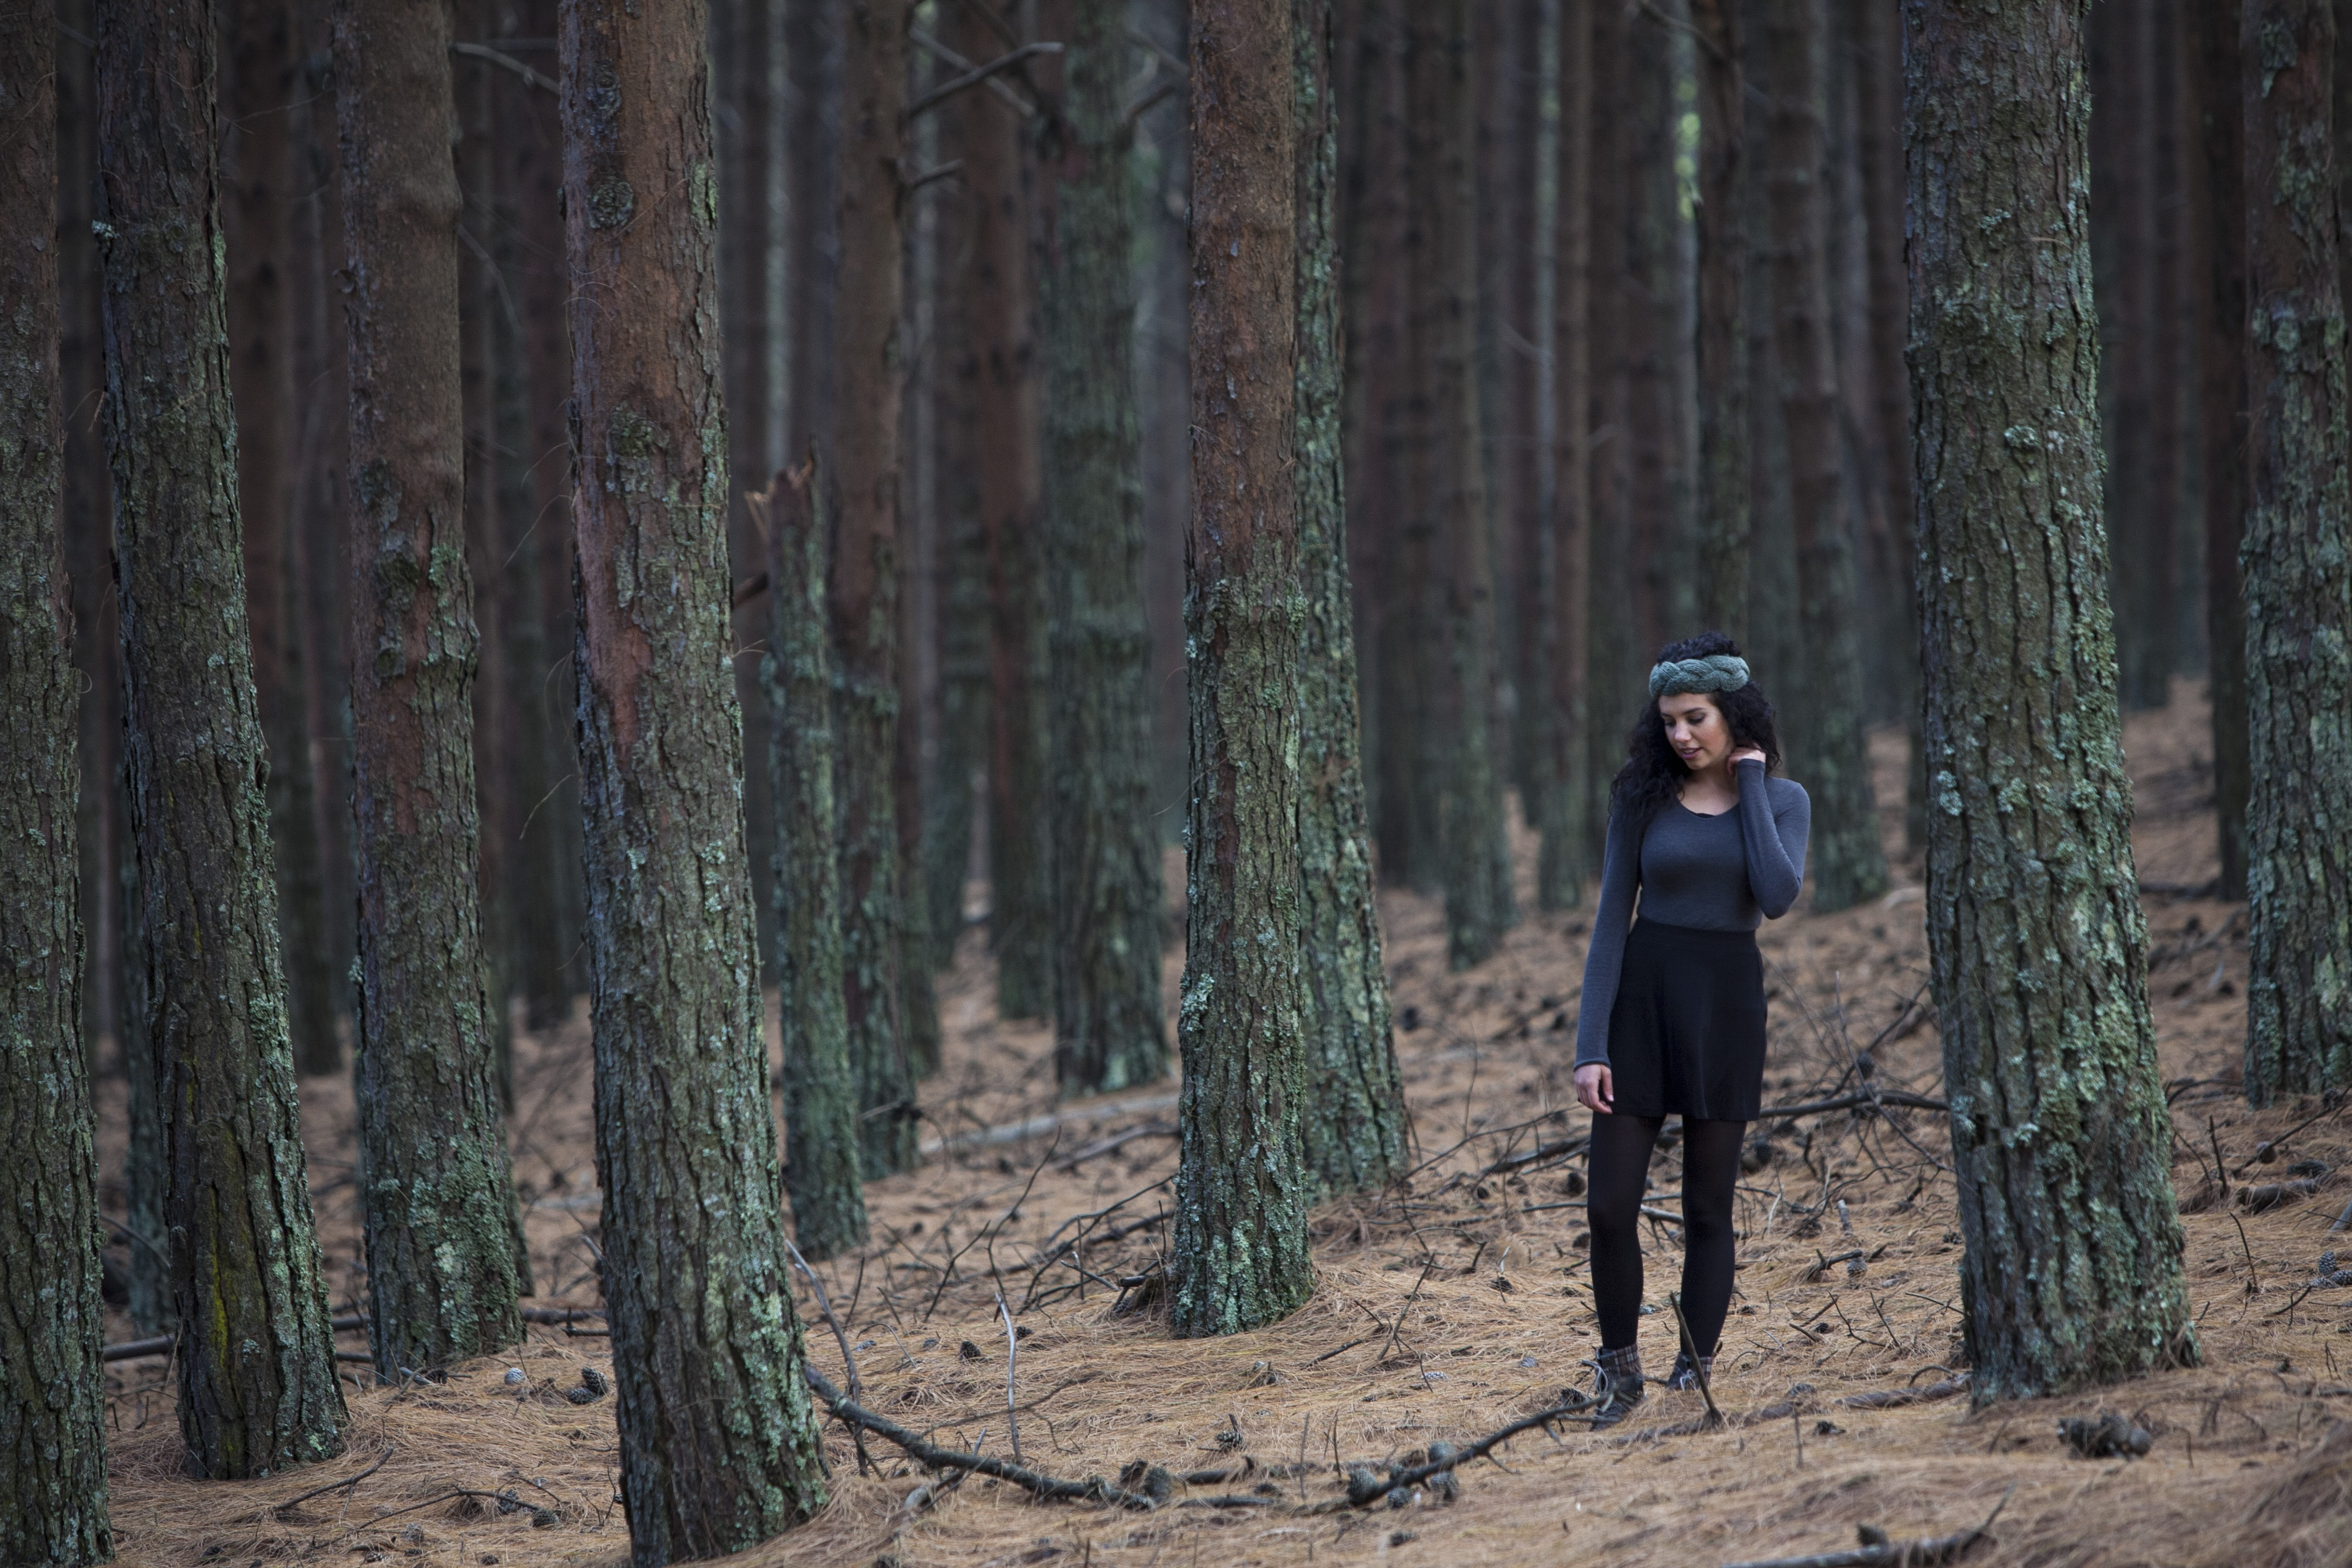 A Walk In The Woods stories